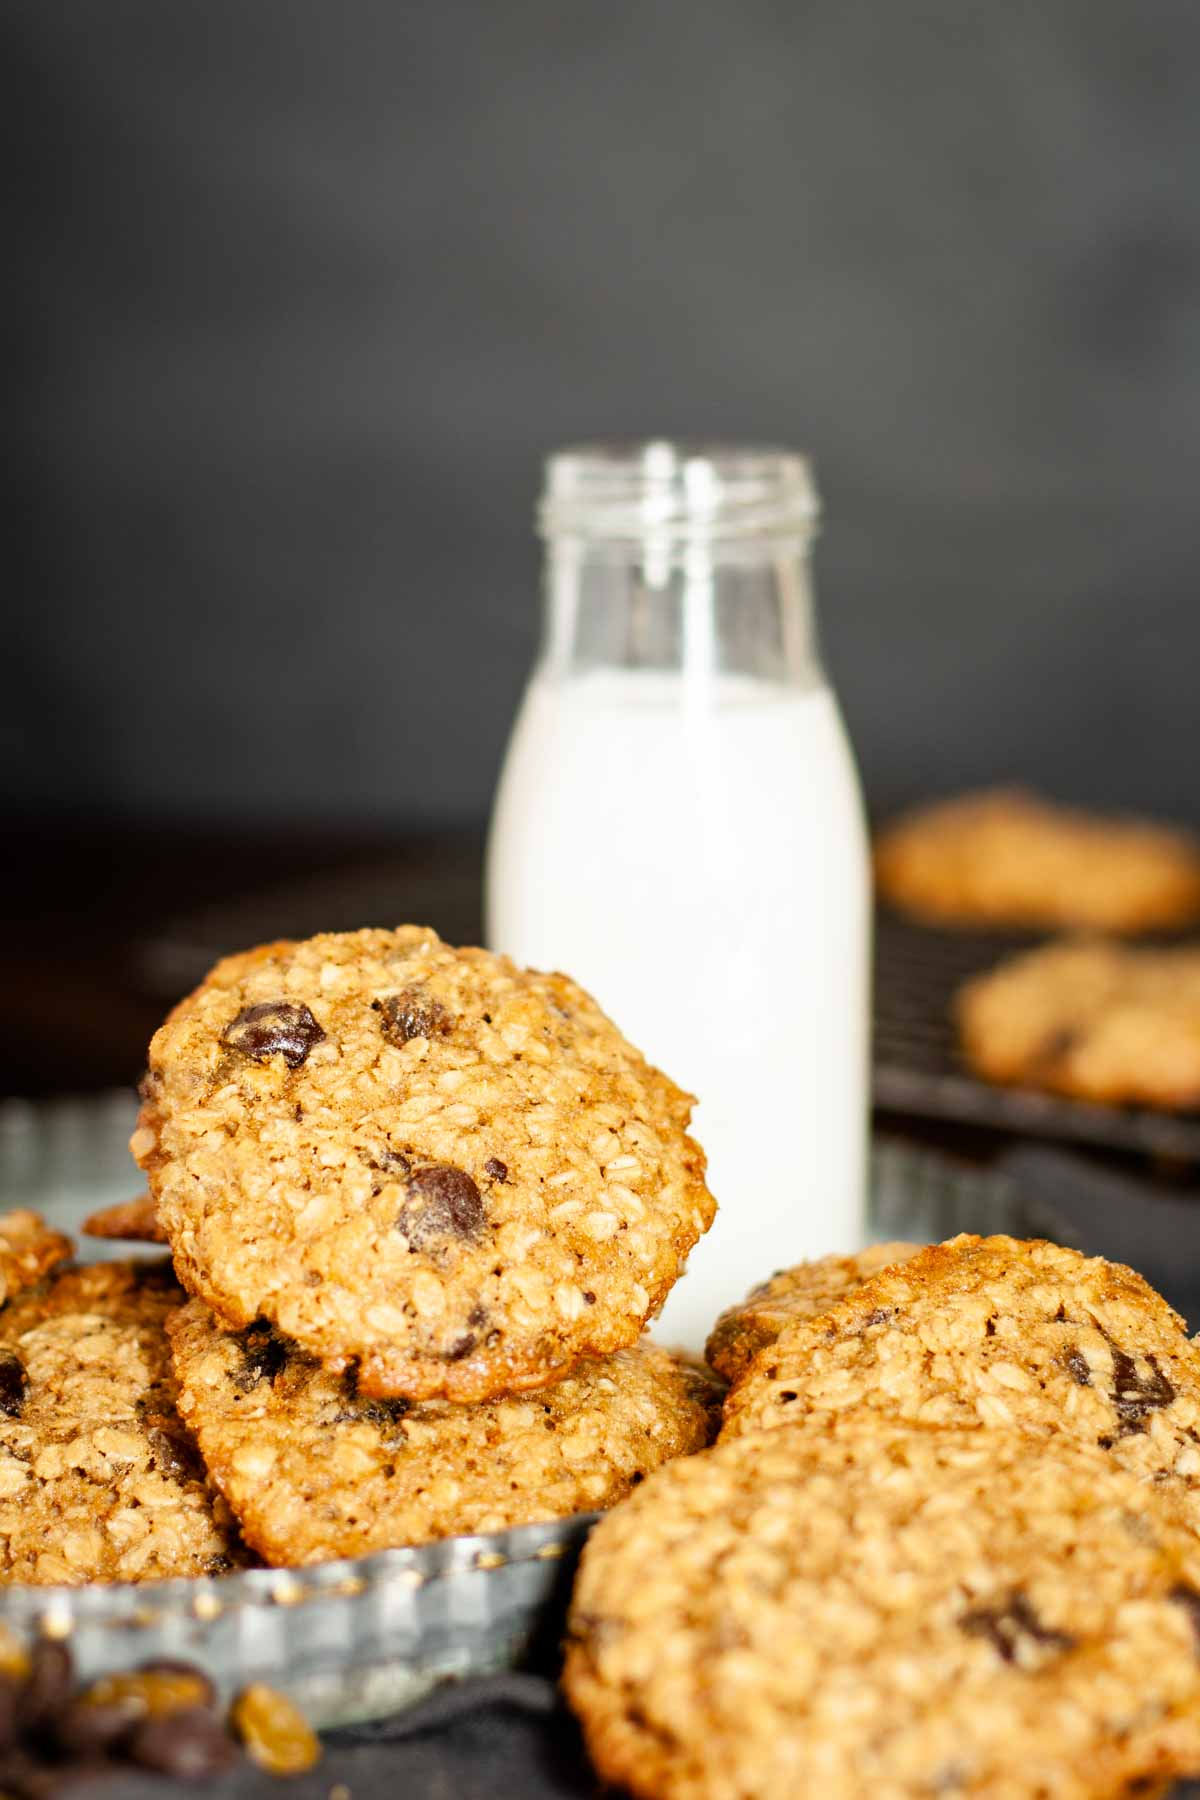 Golden Raisin Oatmeal Cookies with Chocolate Chips